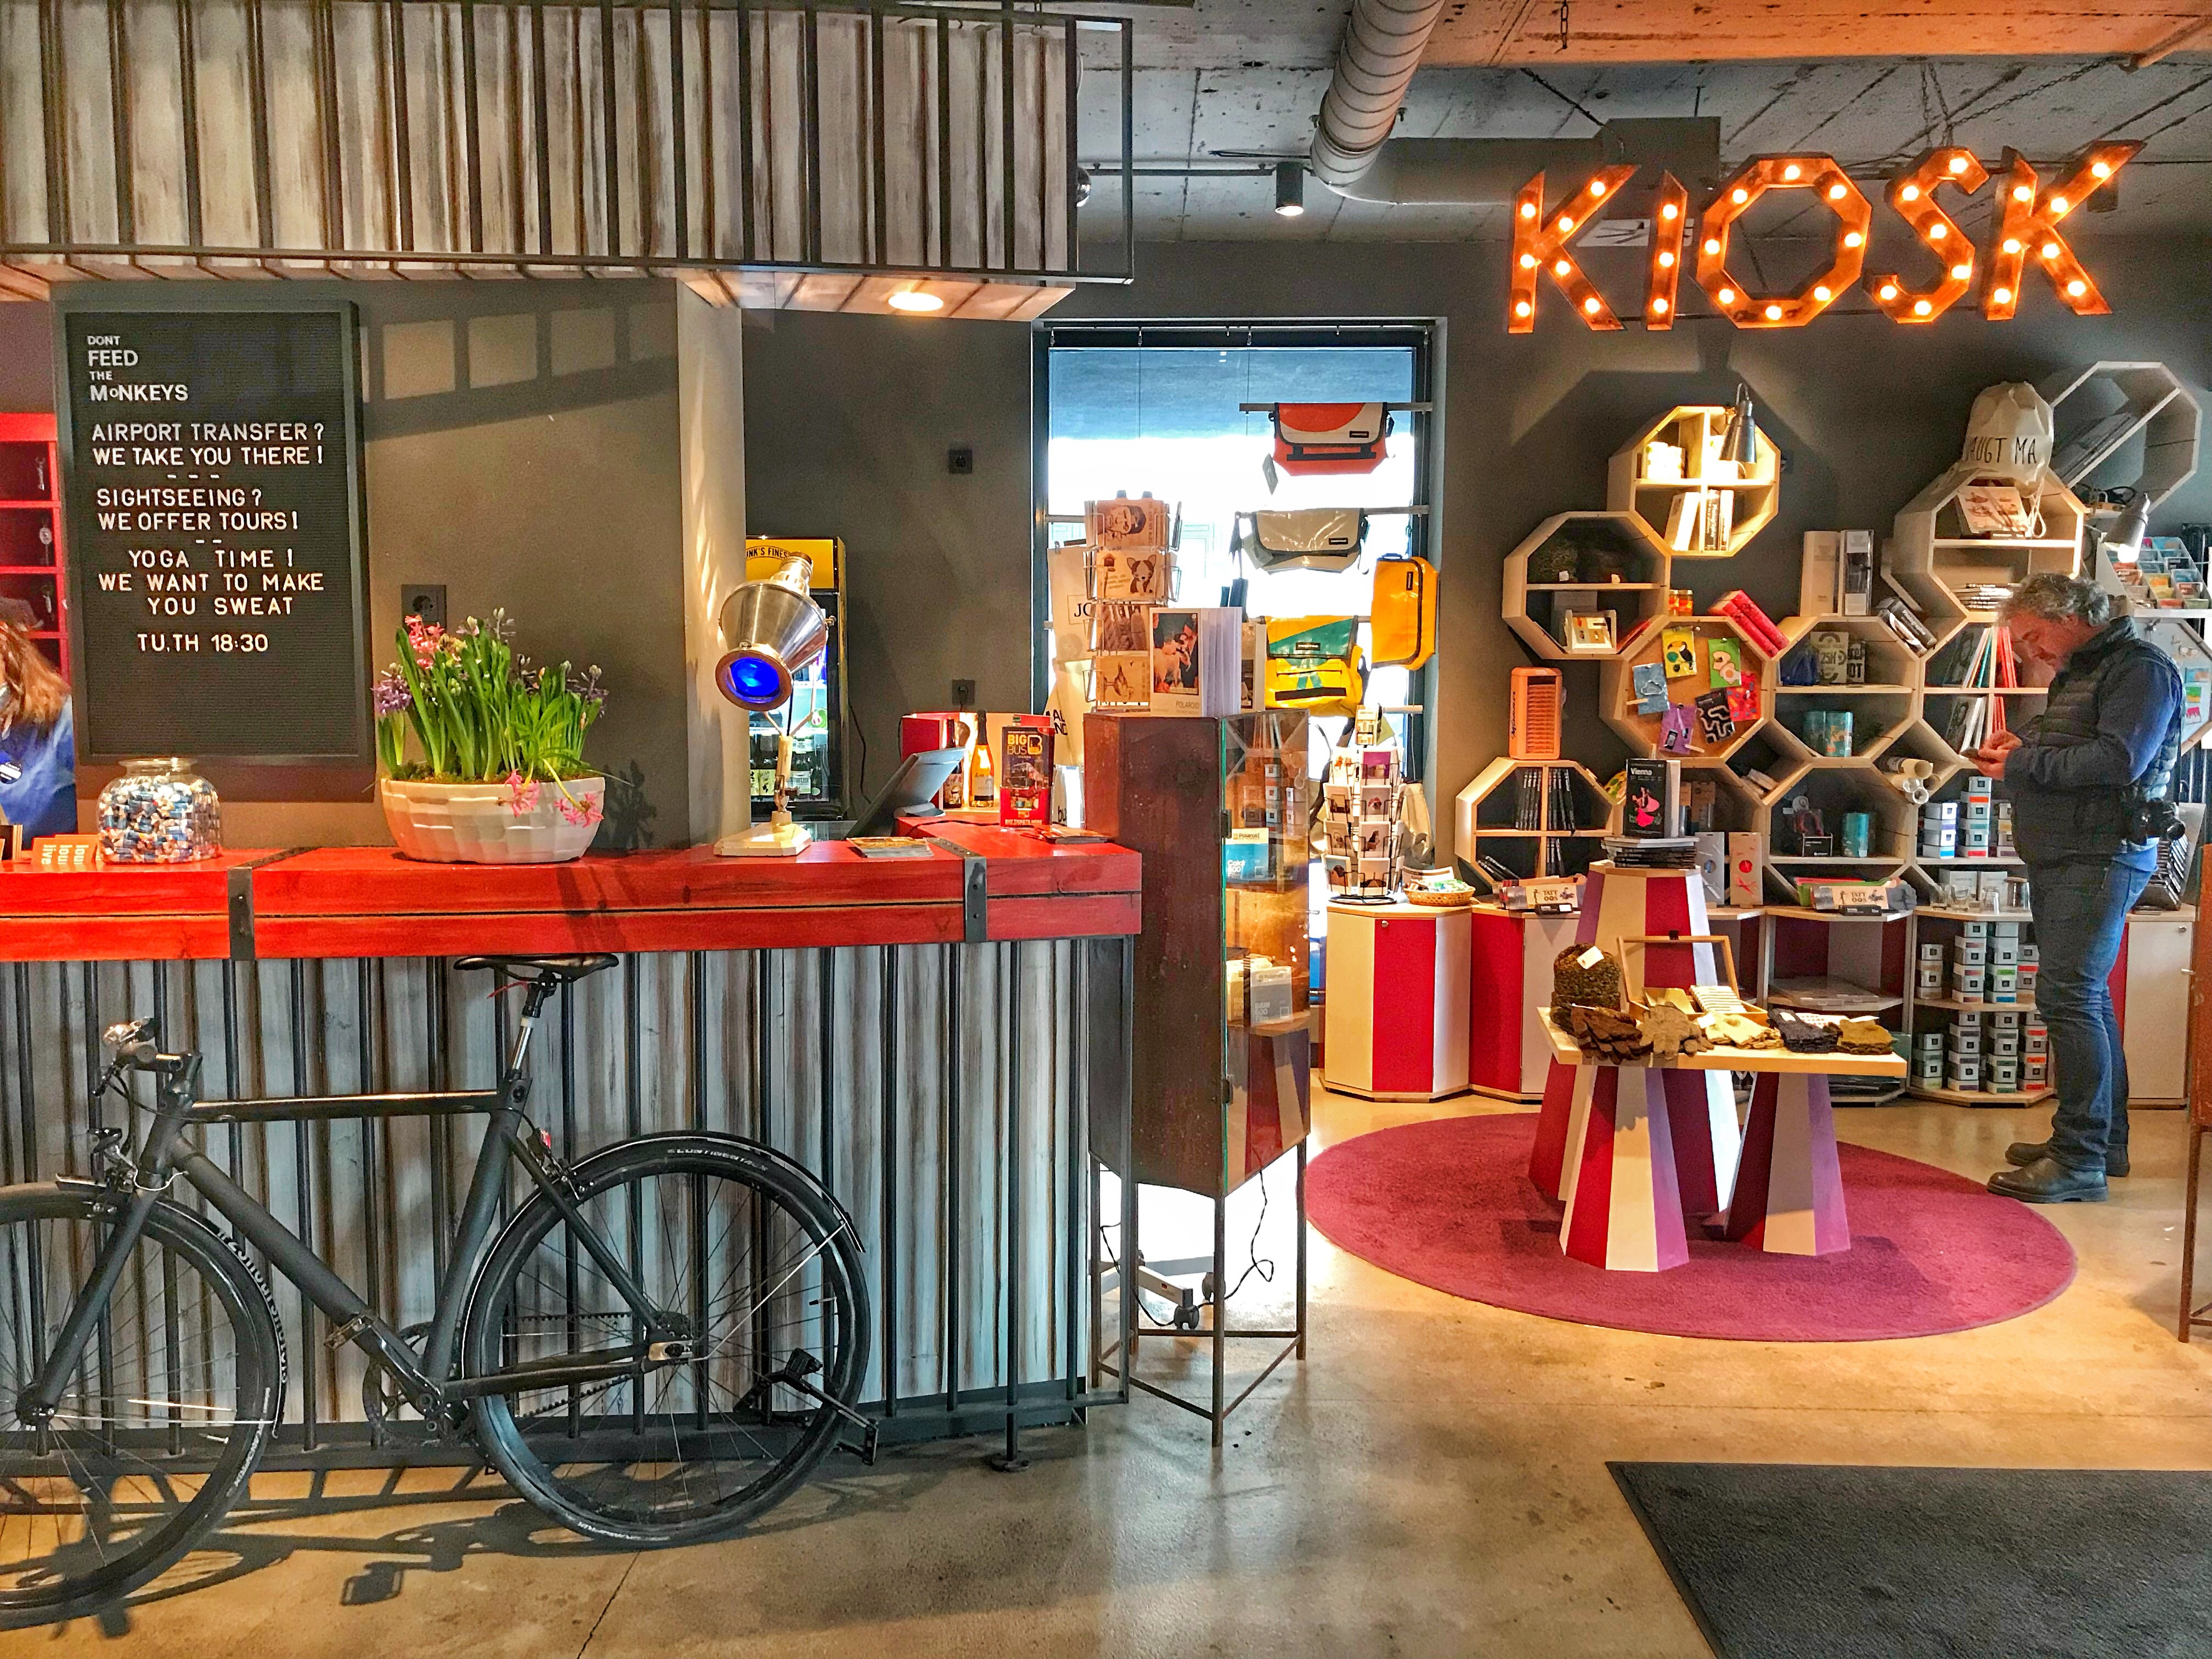 Quirky circus themed hotel 25hours vienna for Quirky hotels in prague